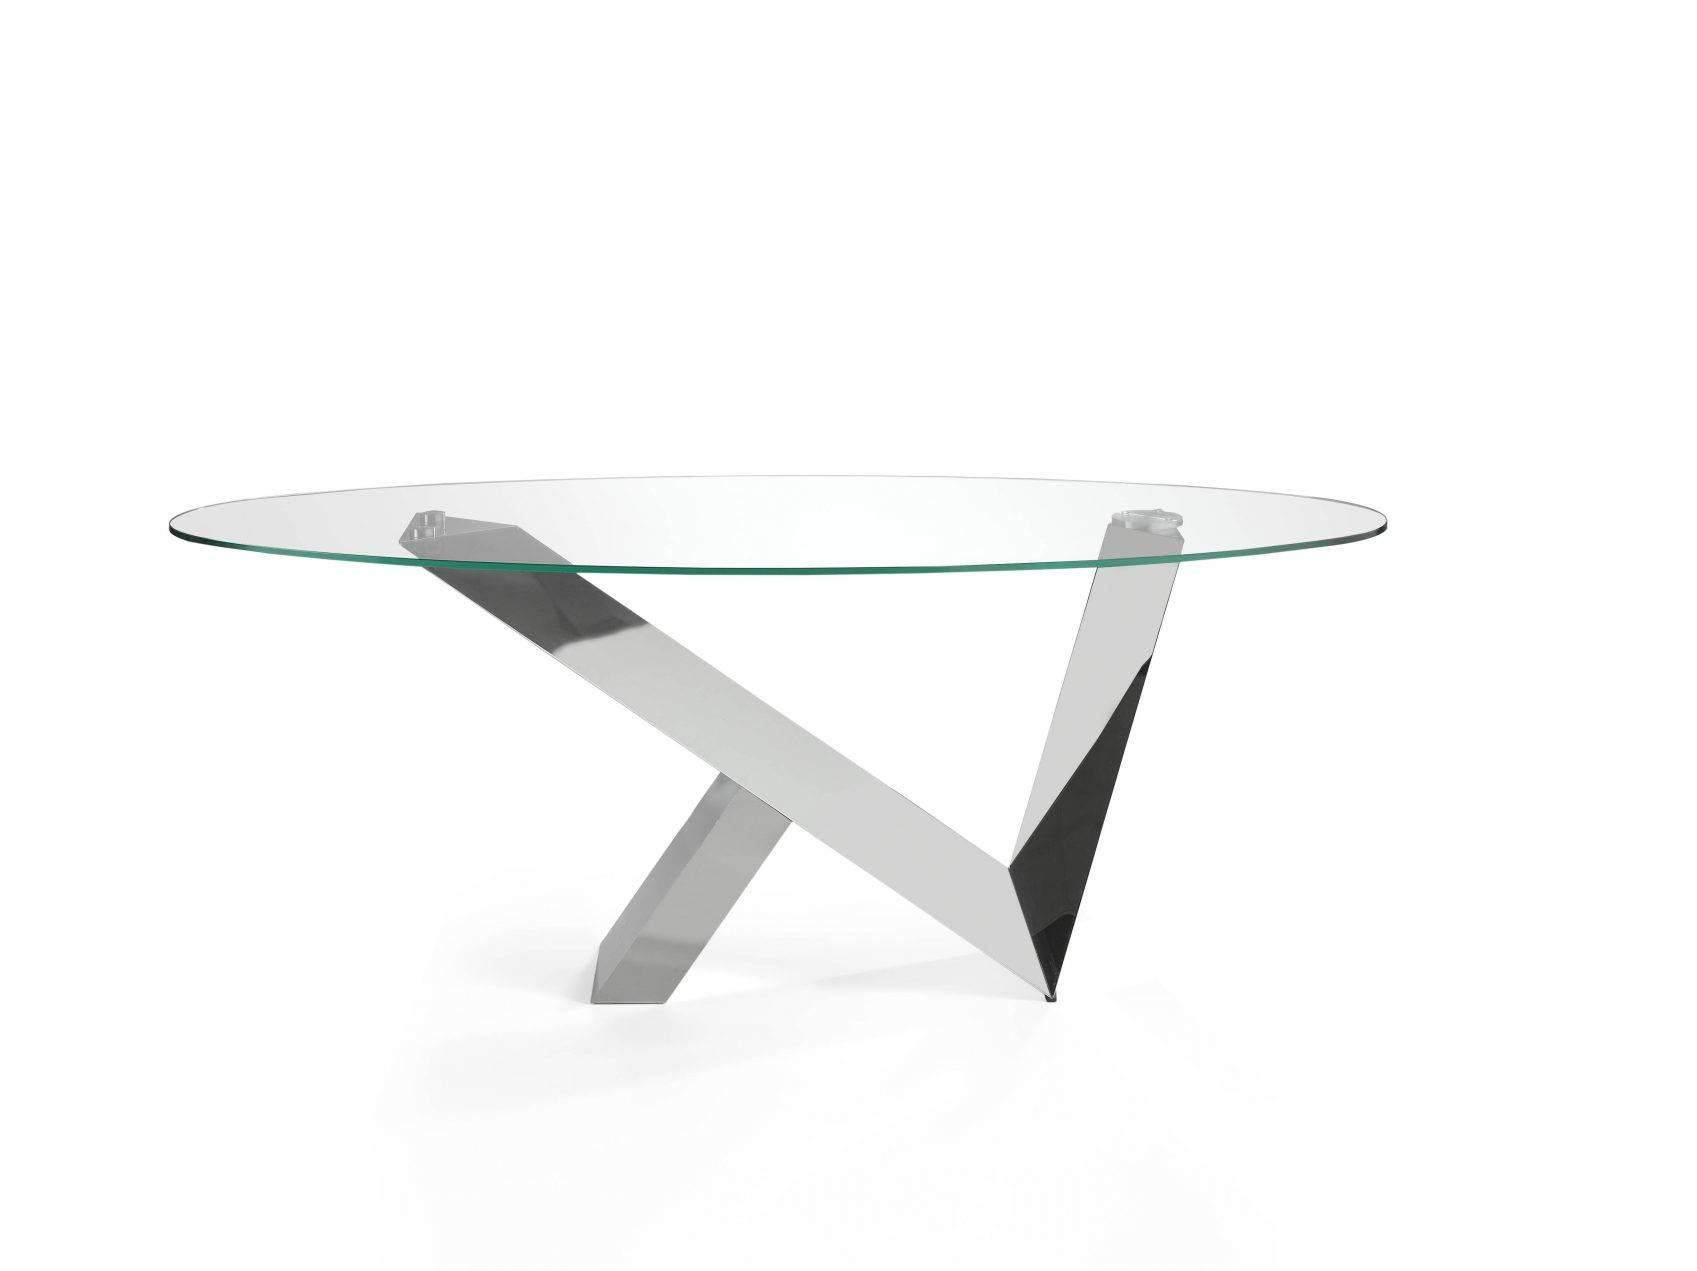 Dining table with tempered glass top and stainless steel frame.